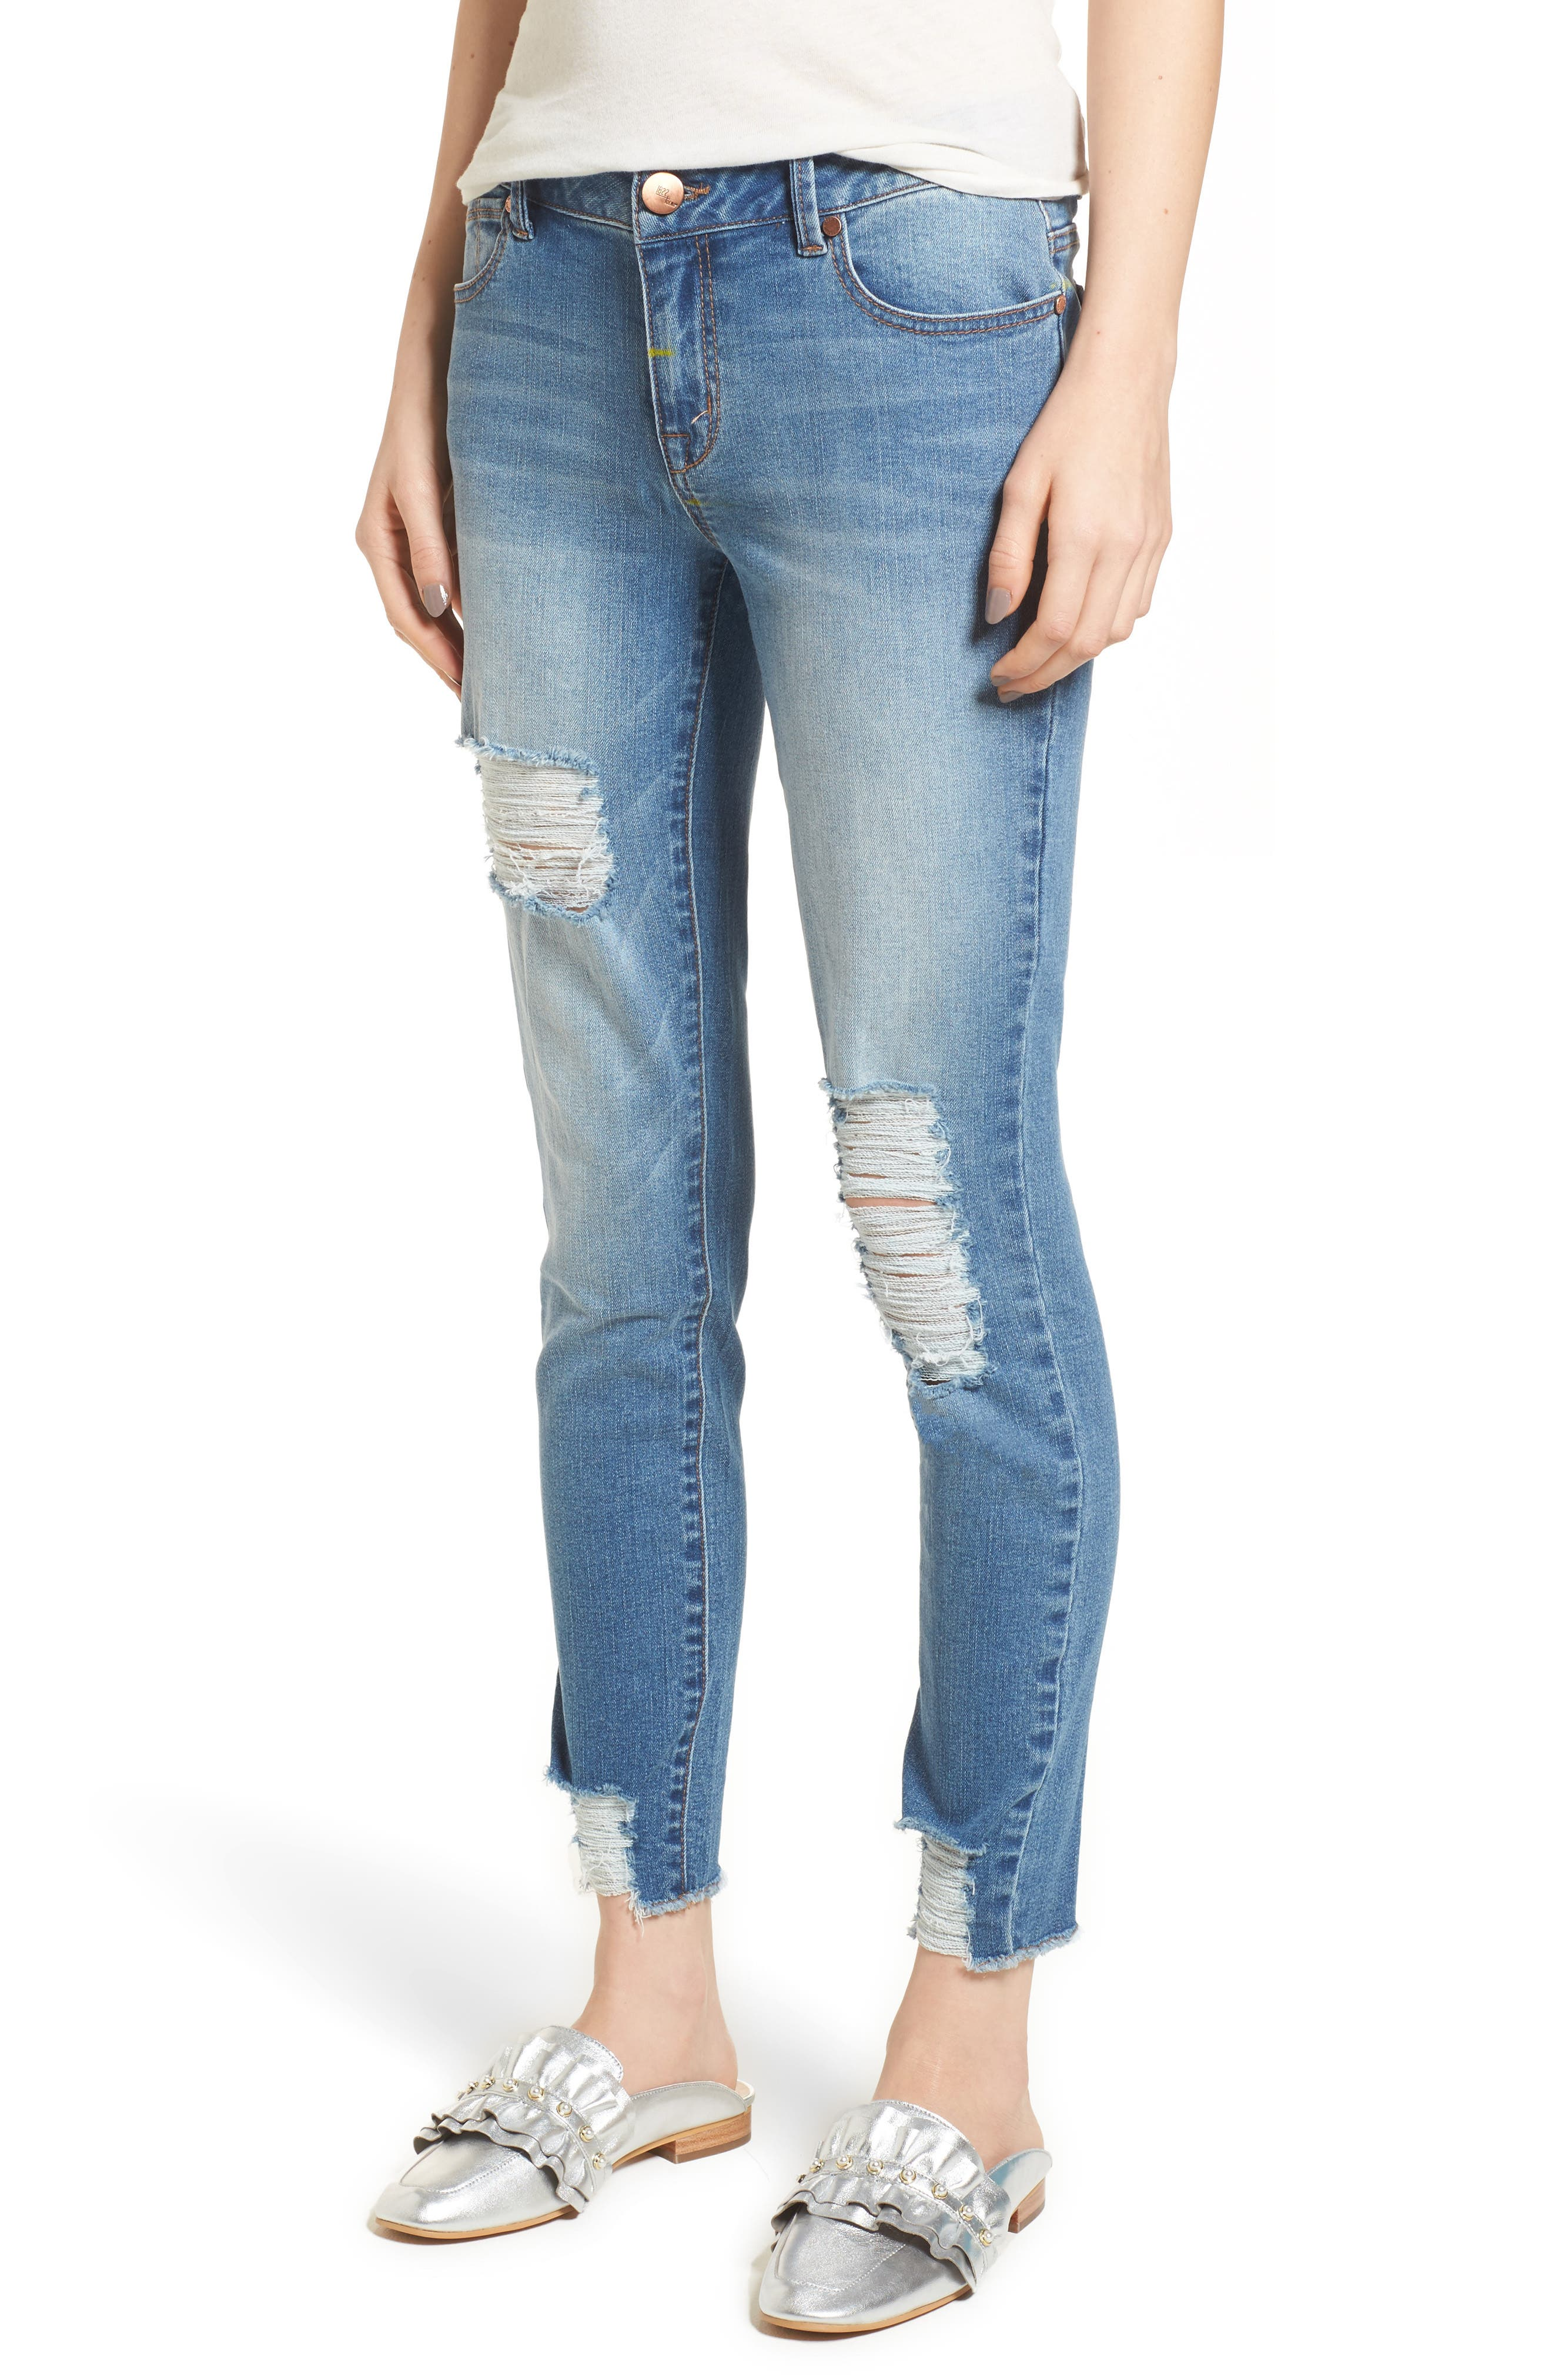 Decon Ripped Skinny Jeans,                             Main thumbnail 1, color,                             426